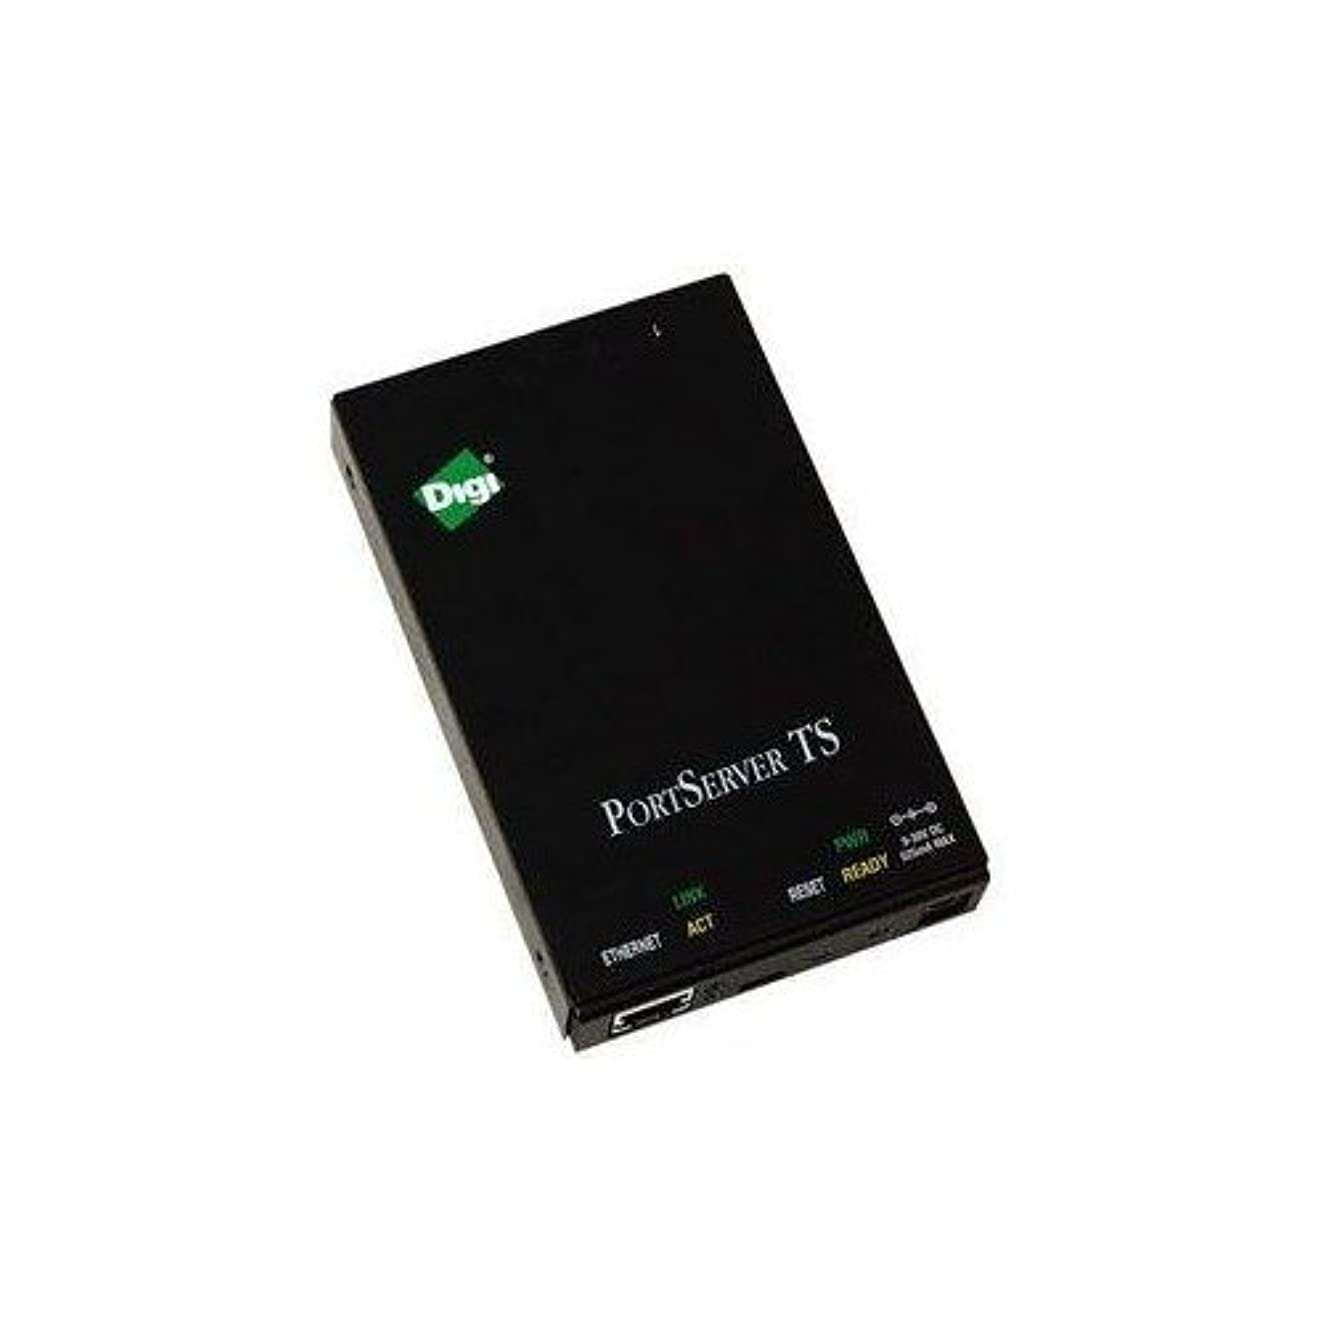 Portserver Ts 1PORT RS-232 Serial to Ethernet Device Server